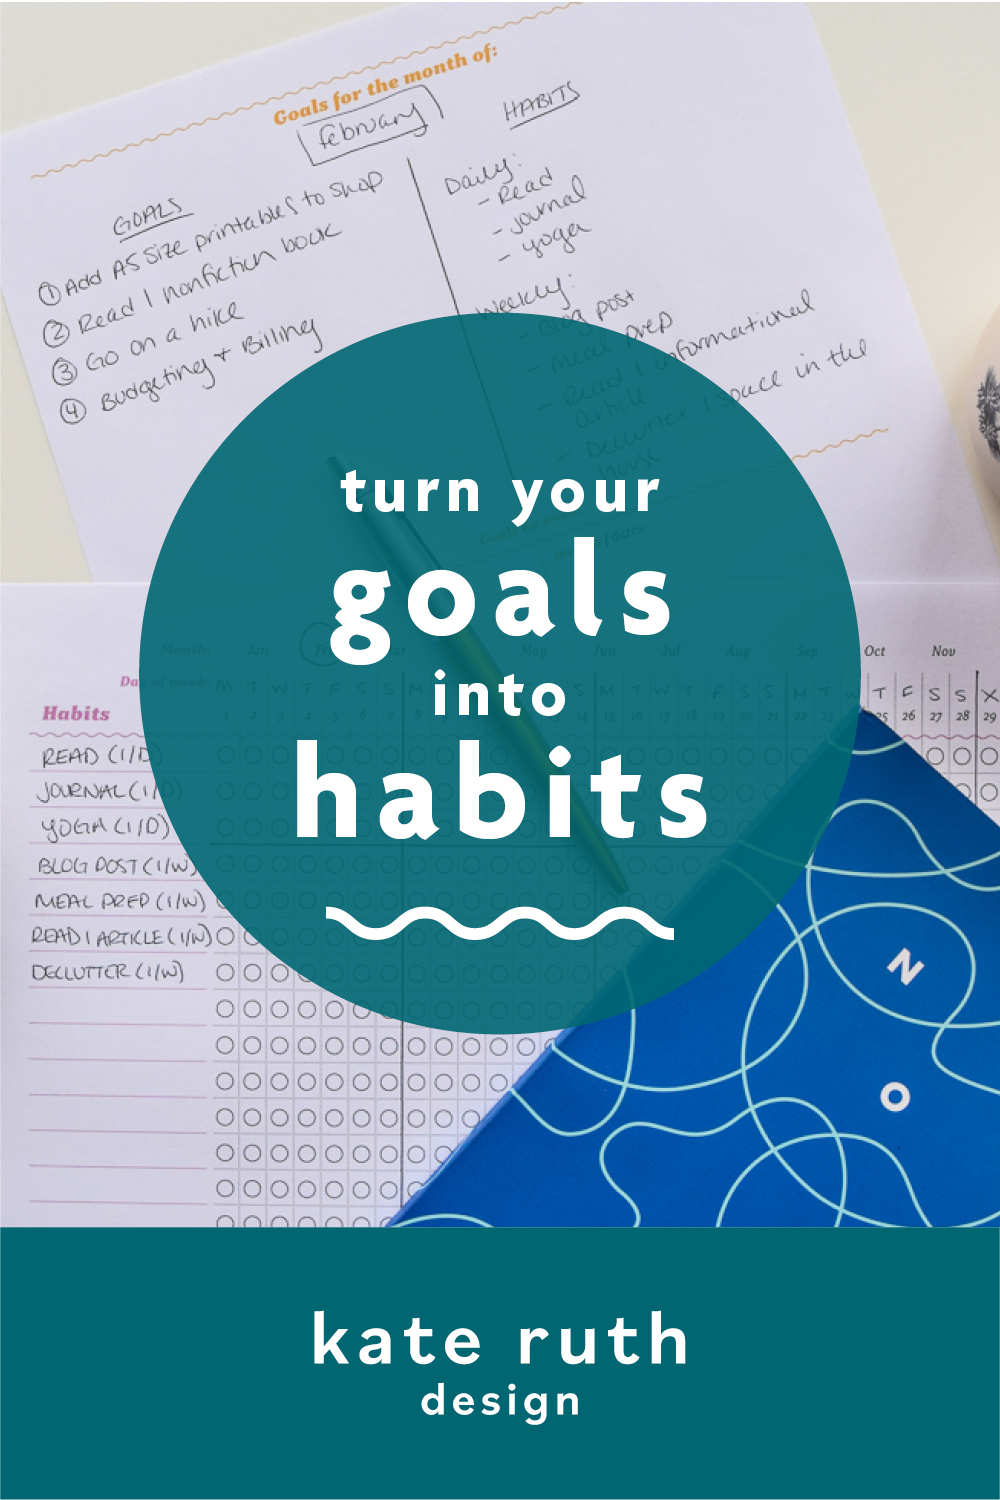 """photo of planner pages with text: """"turn your goals into habits"""""""